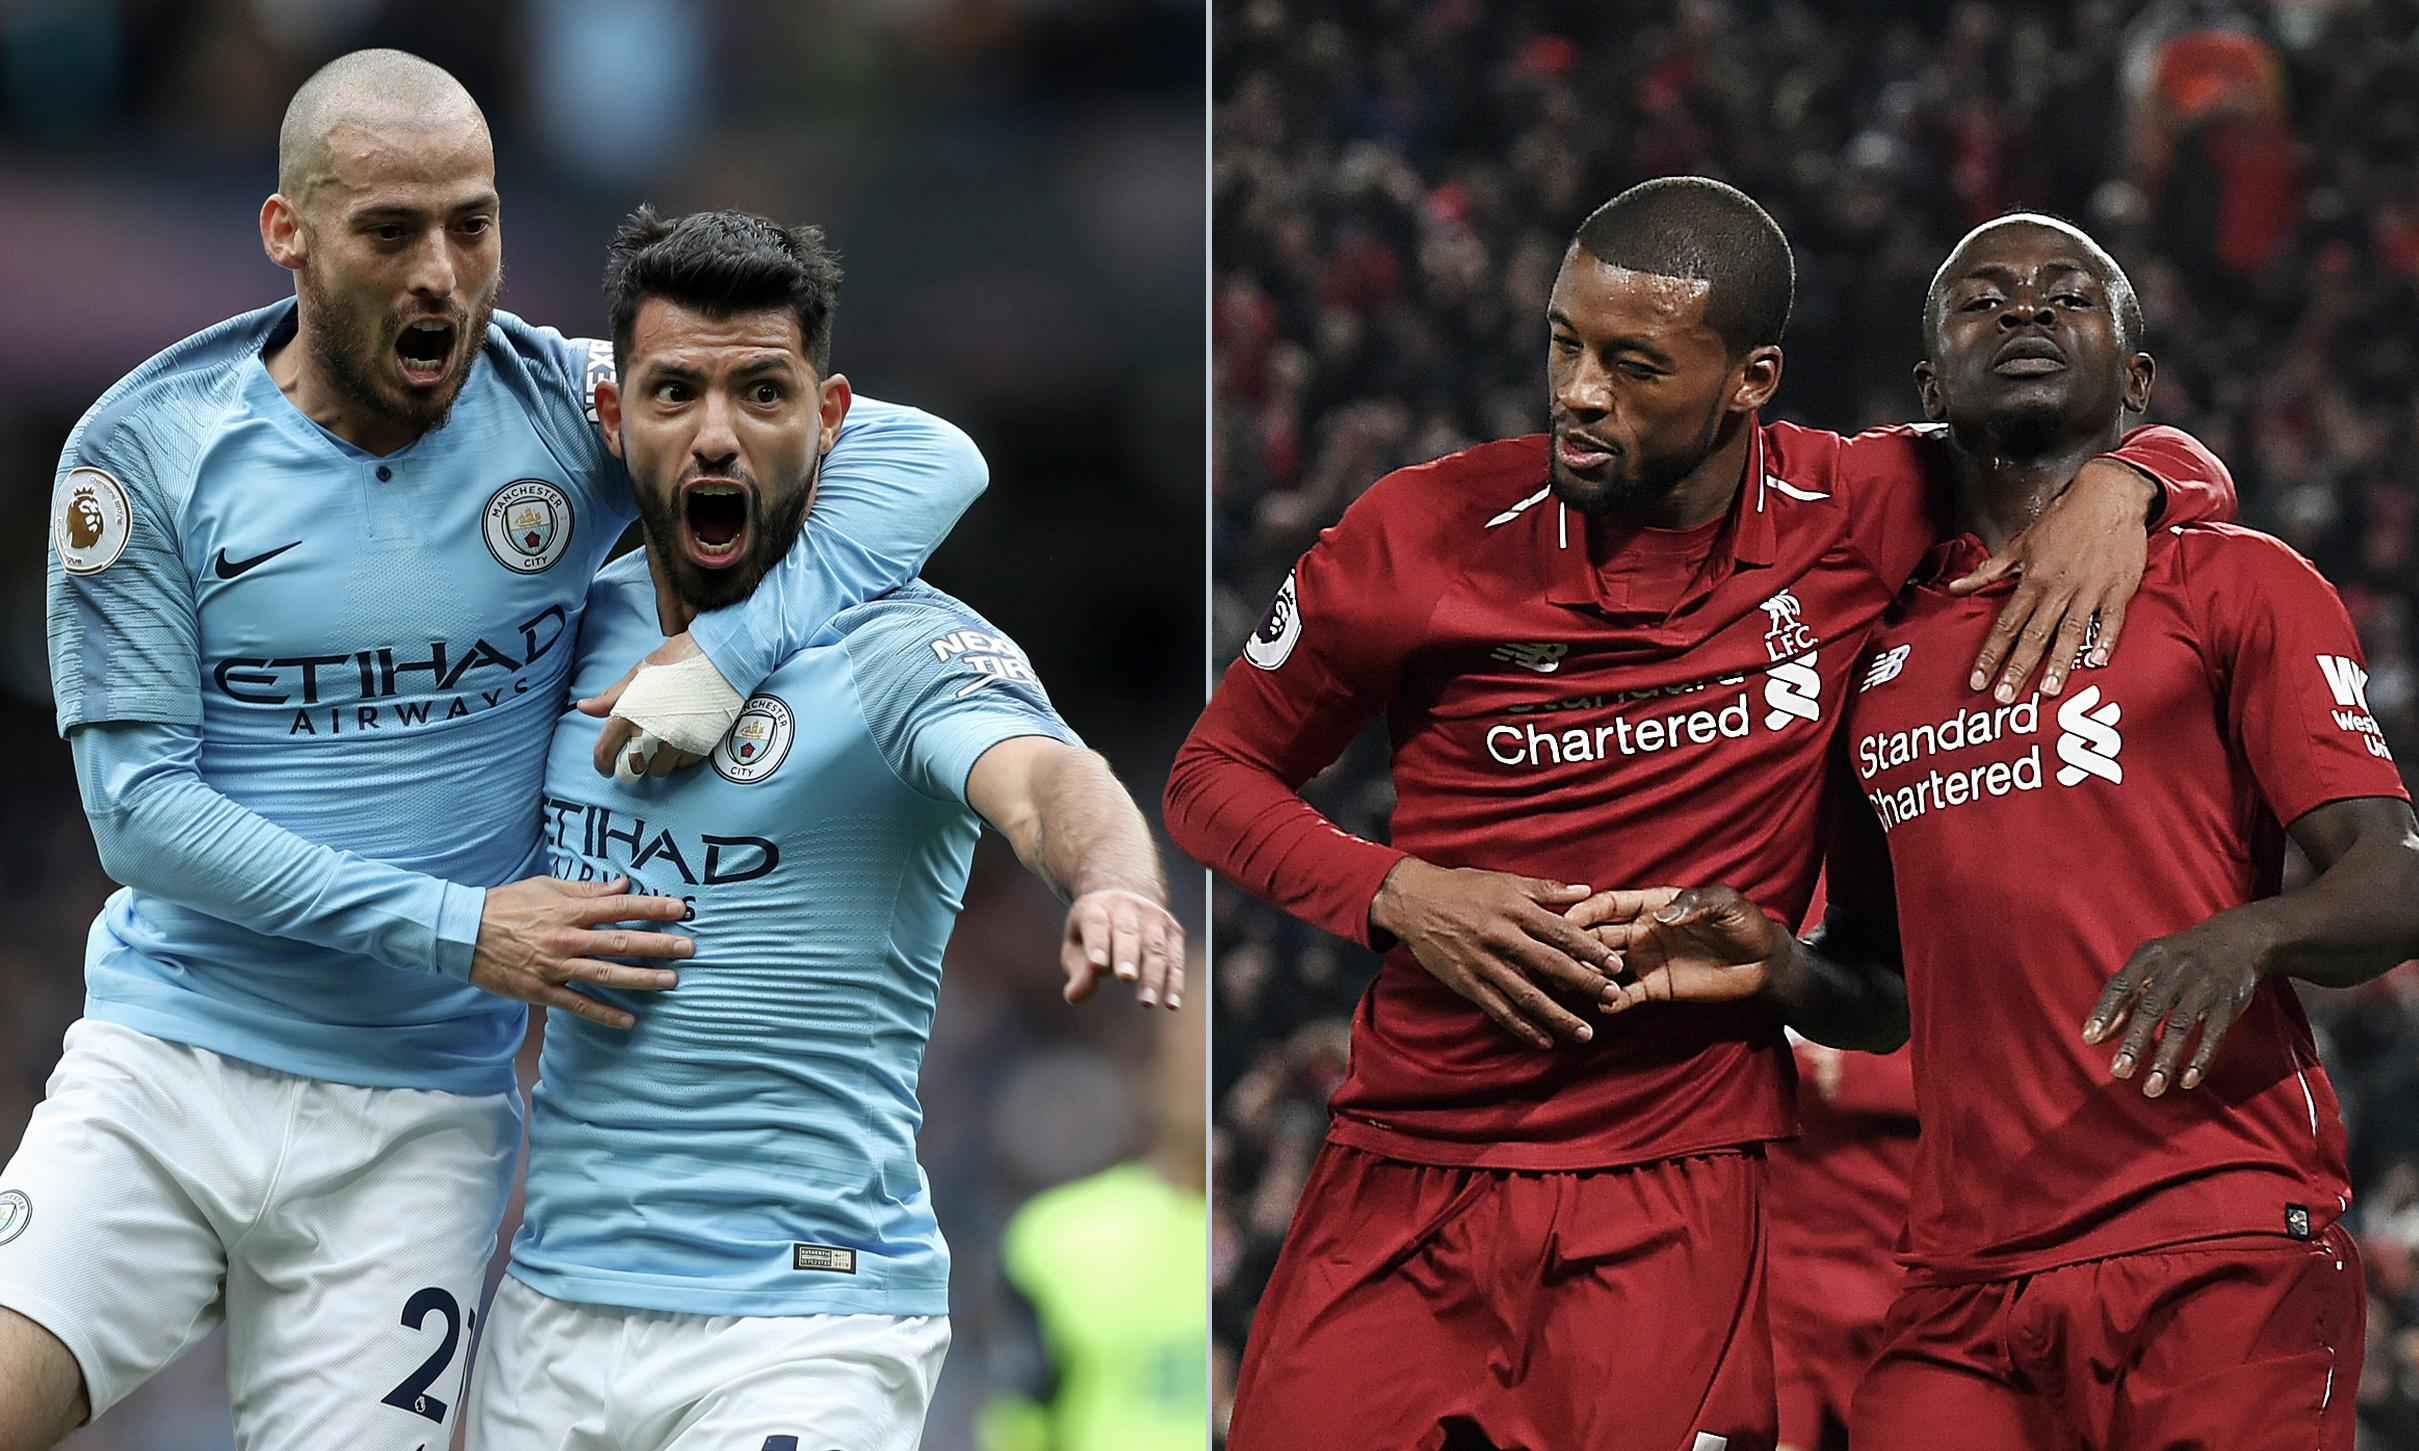 Who do Manchester United fans prefer for the title: City or Liverpool?